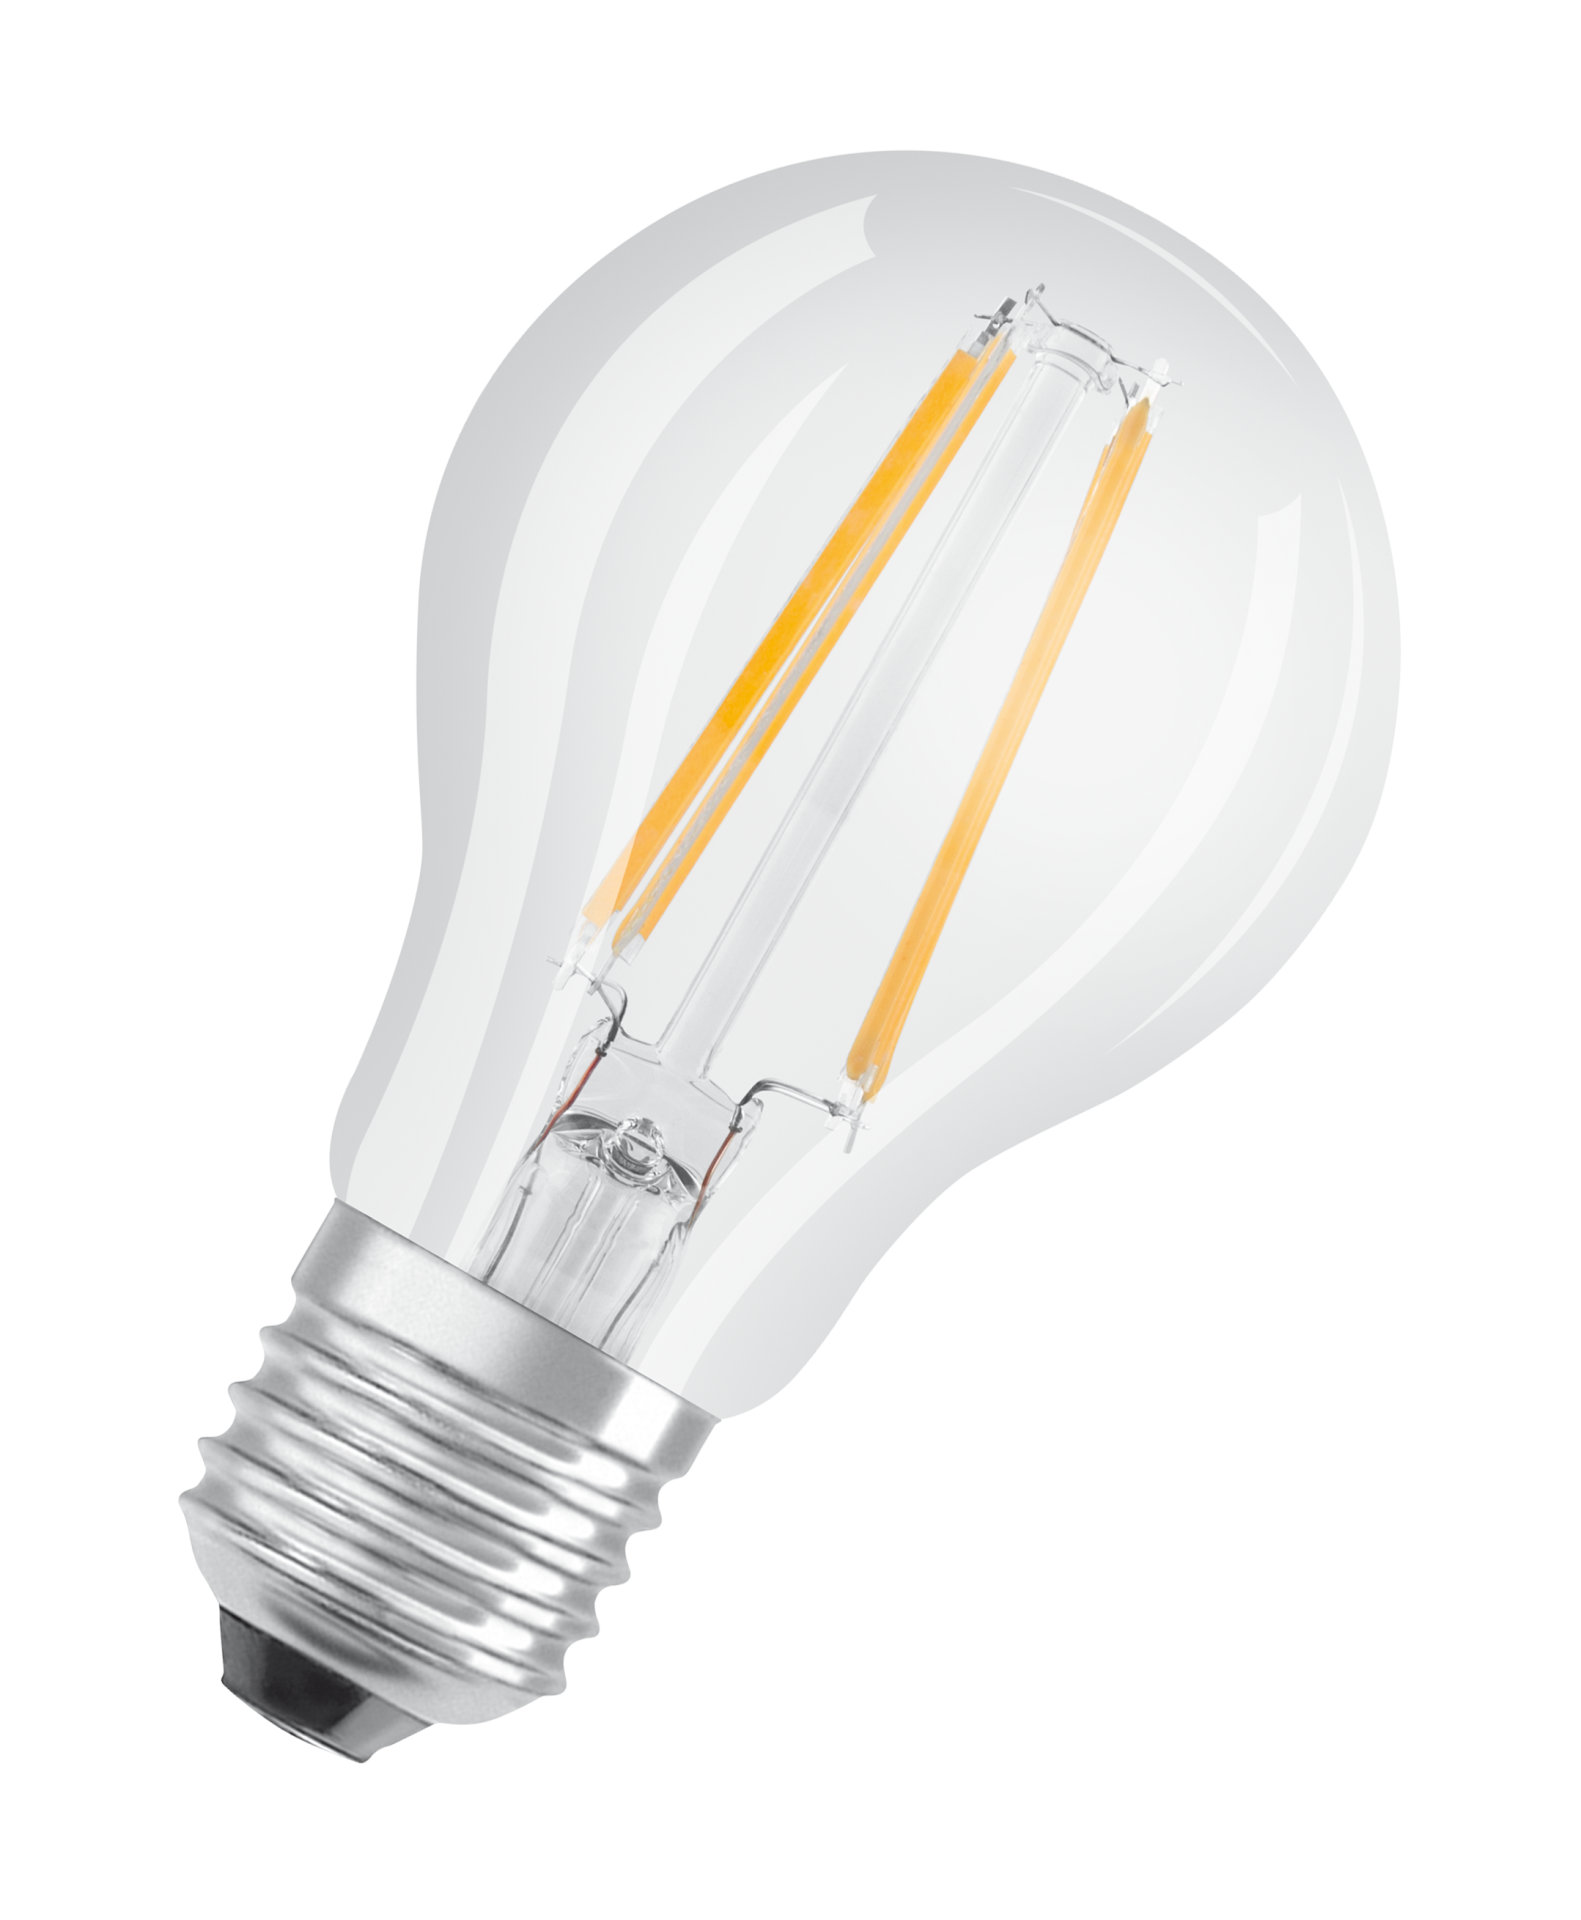 Consumer LED Lamps with added function